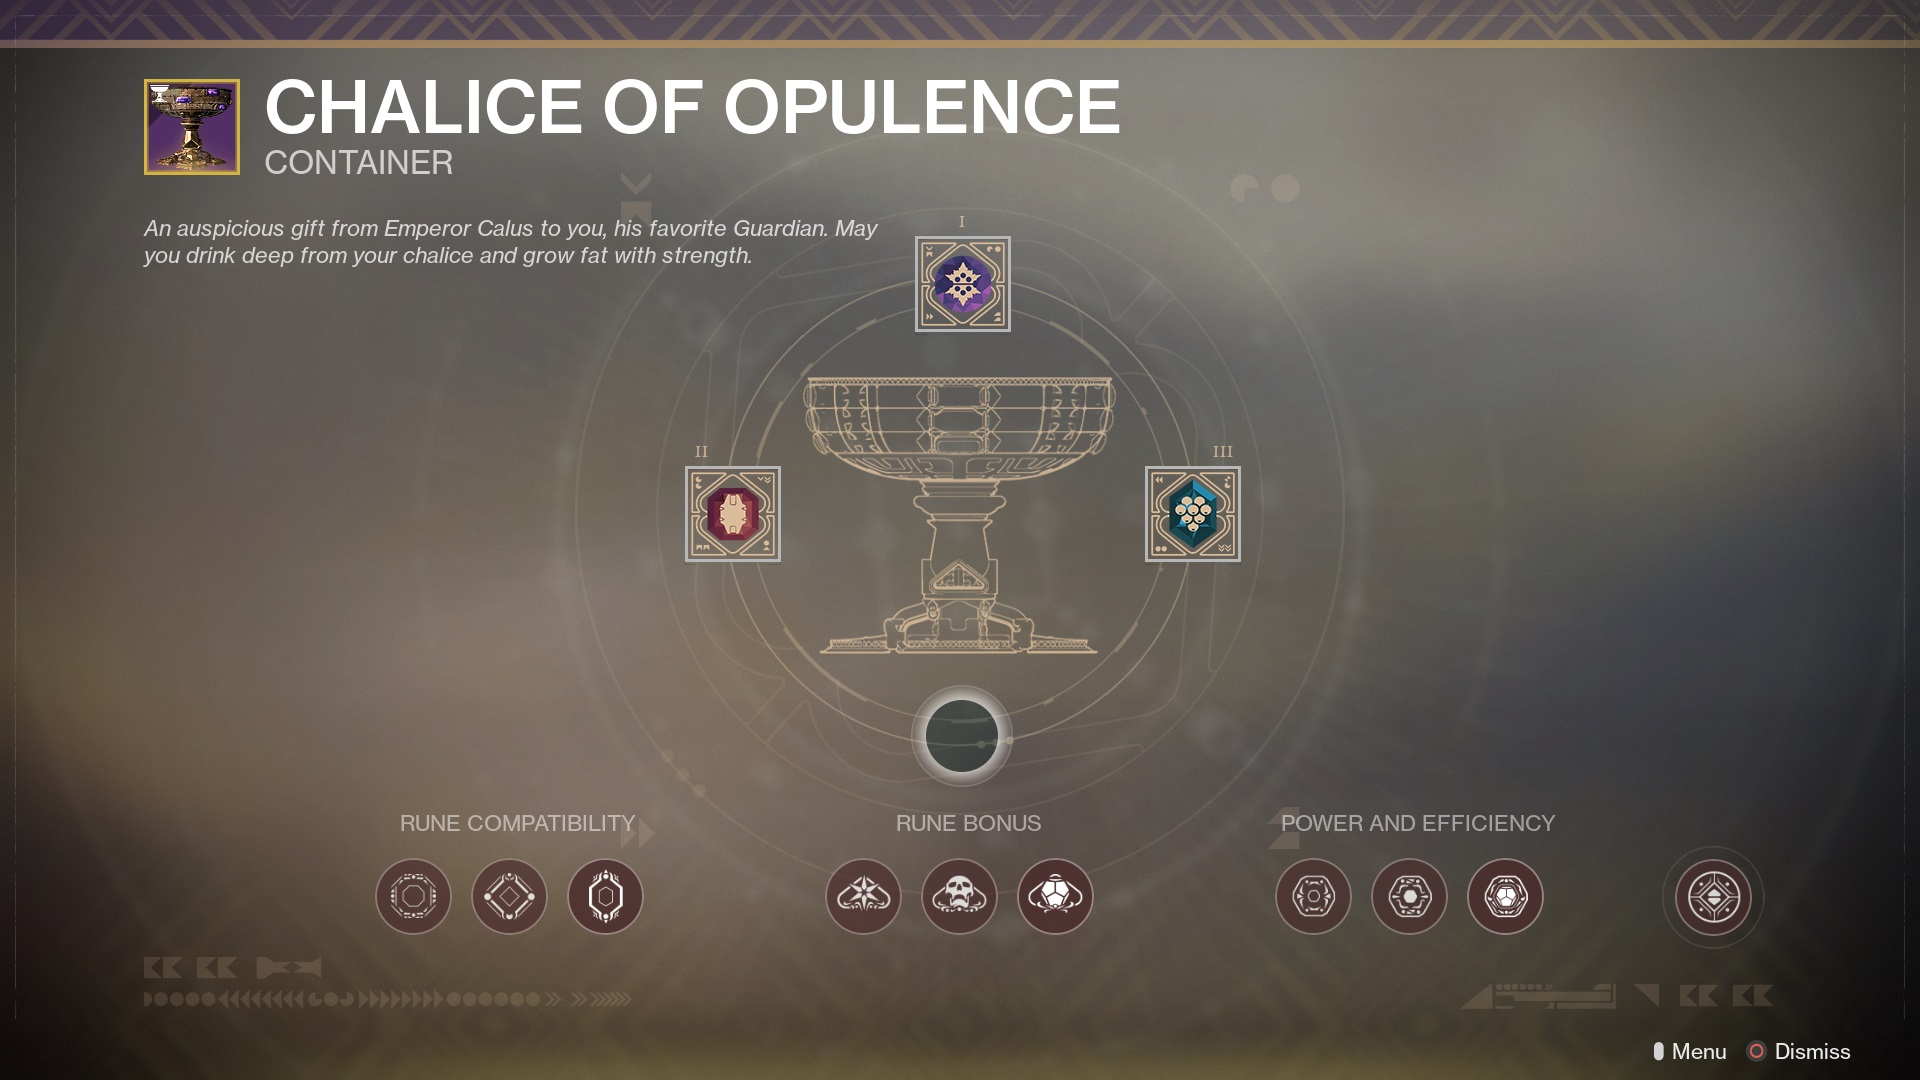 Destiny 2: Bungie Explains How Chalice of Opulence System Works